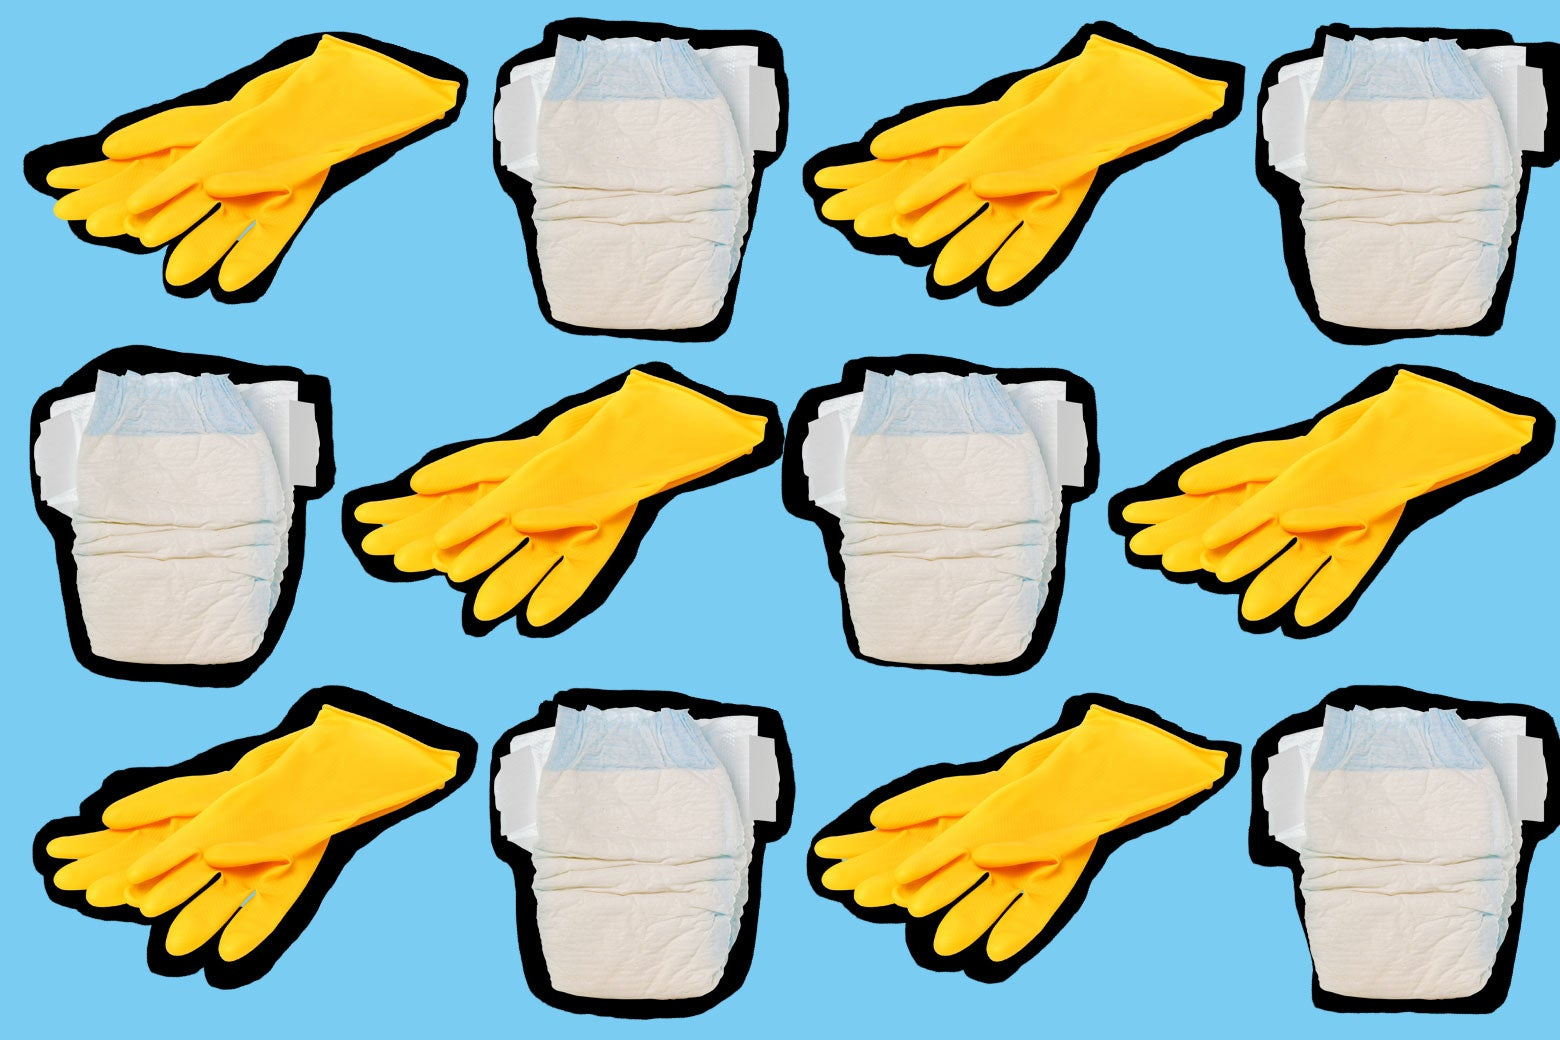 Alternating yellow rubber gloves and diapers.